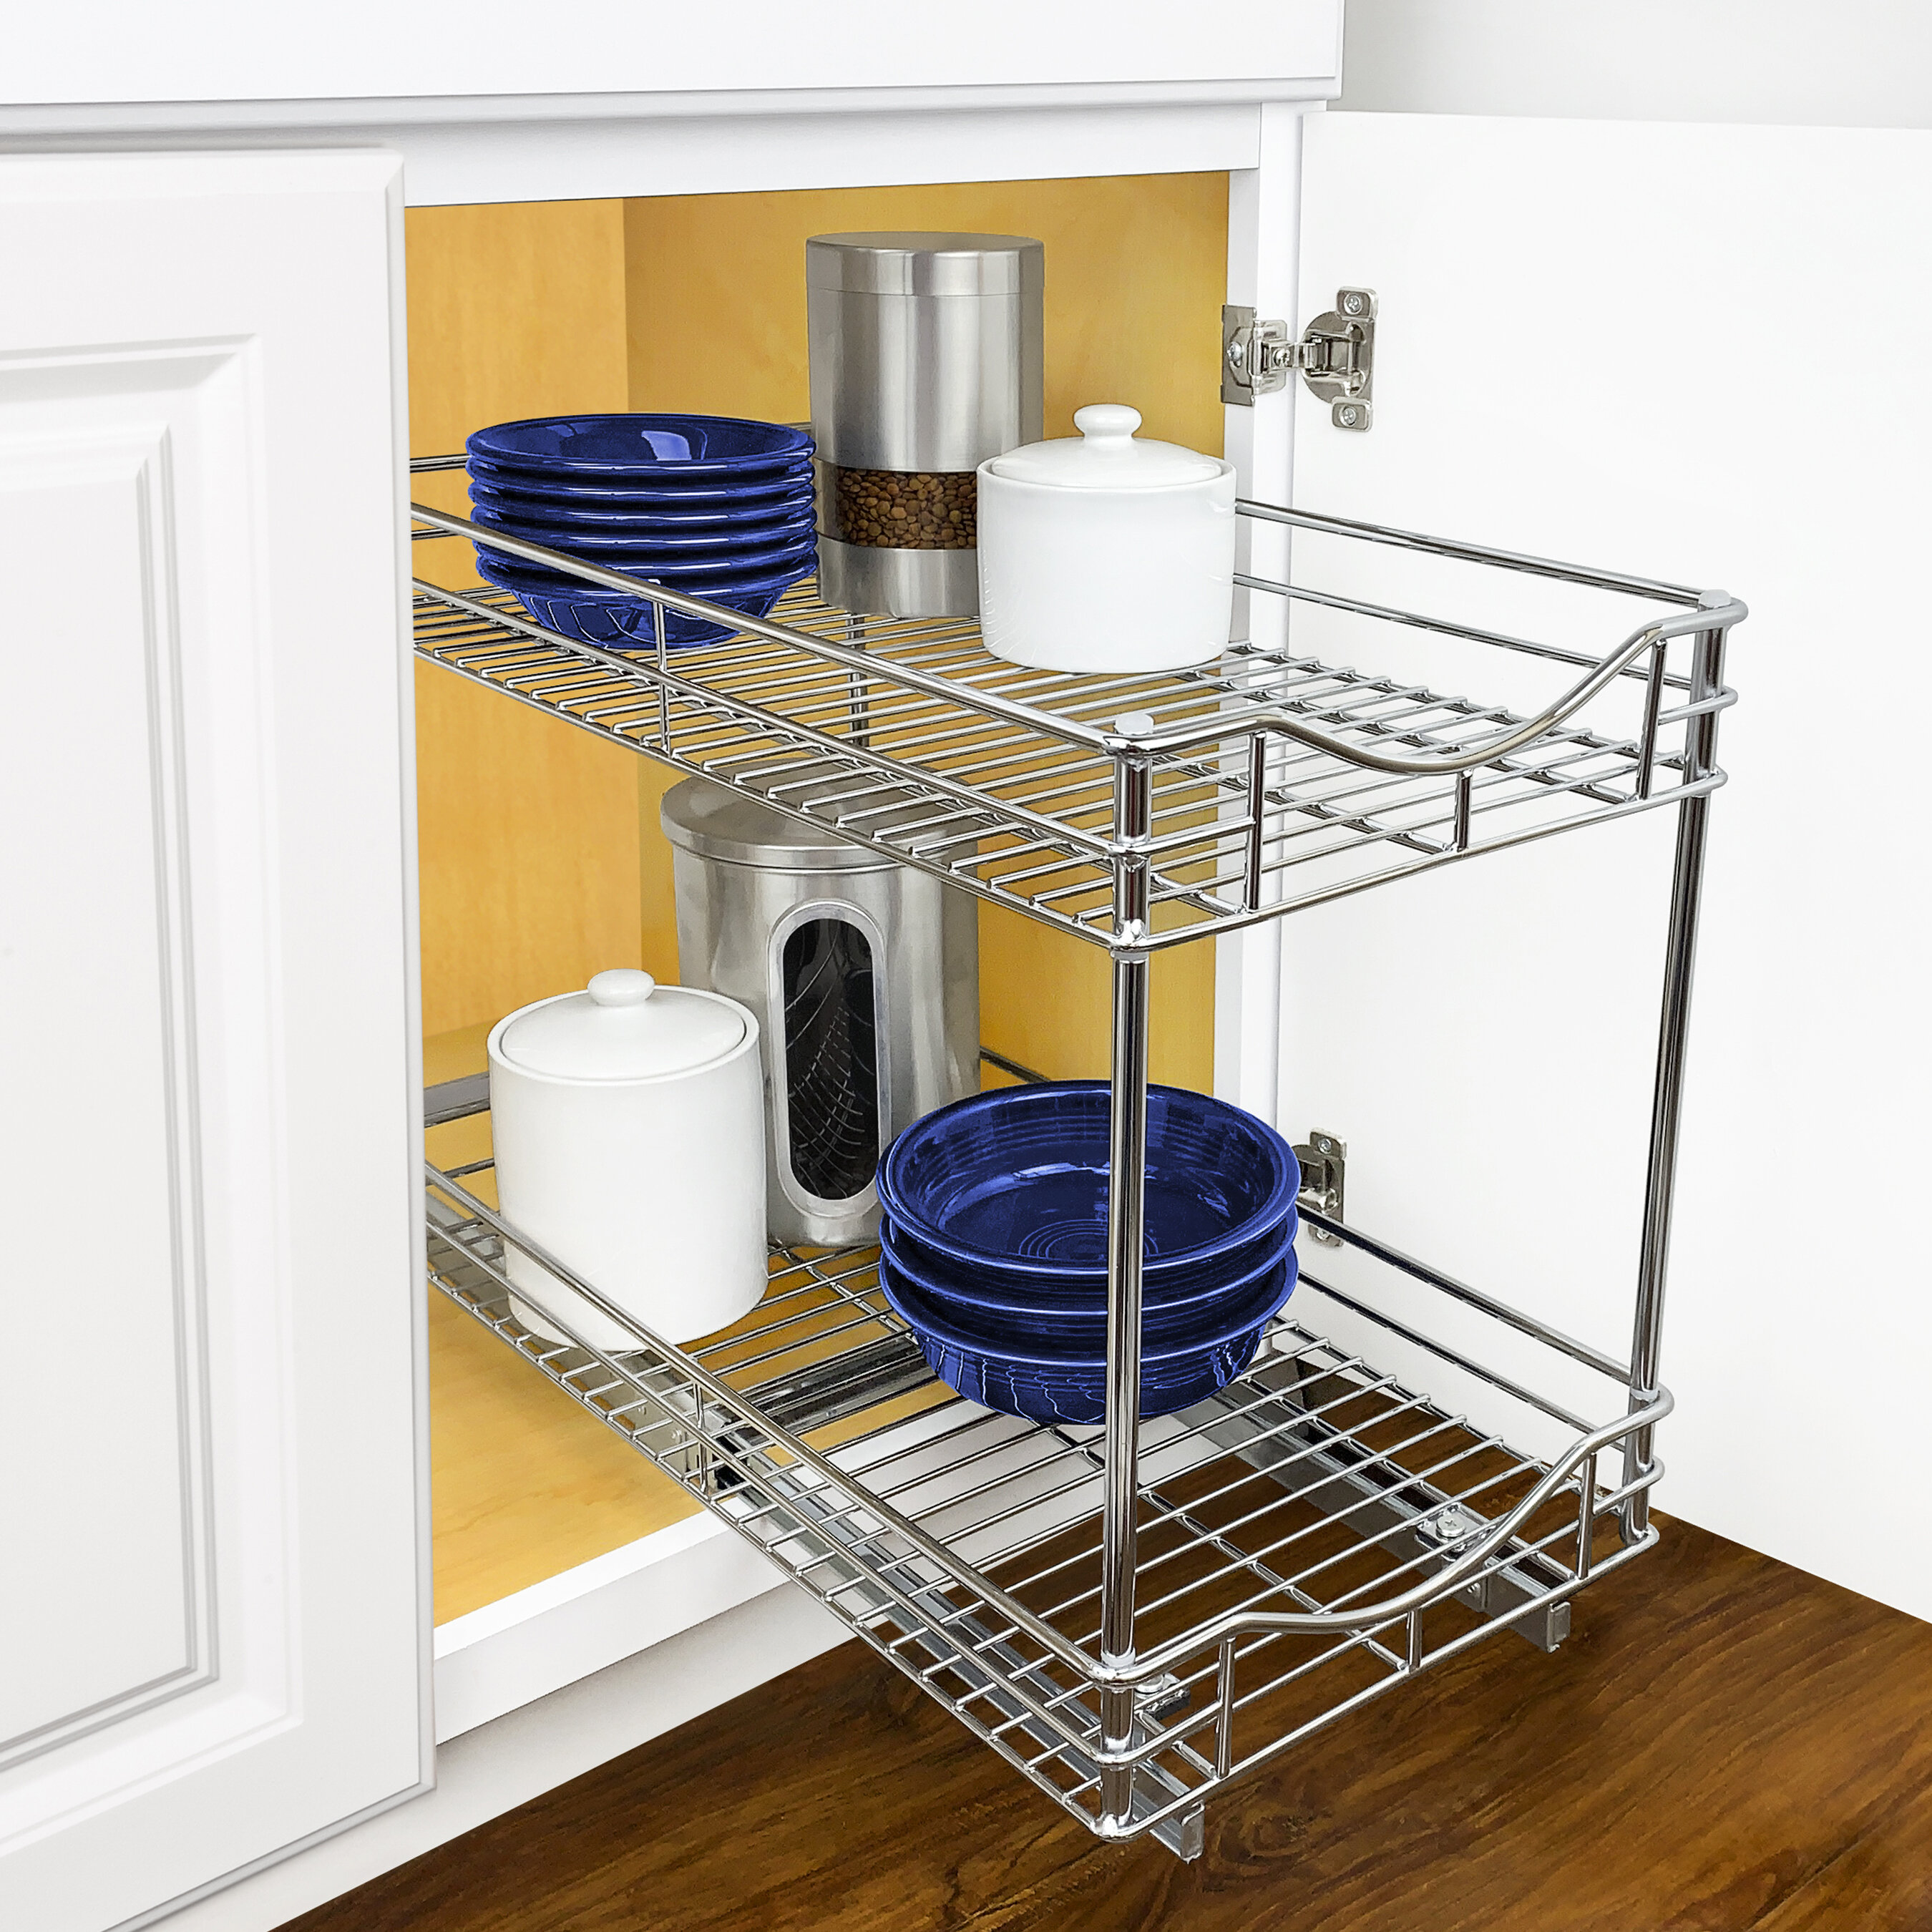 Home Cookware Dining Bar Supplies Pull Two Tier Lynk Professional Slide Out Under Sink Cabinet Organizer Home Furniture Diy Brucebibee Com